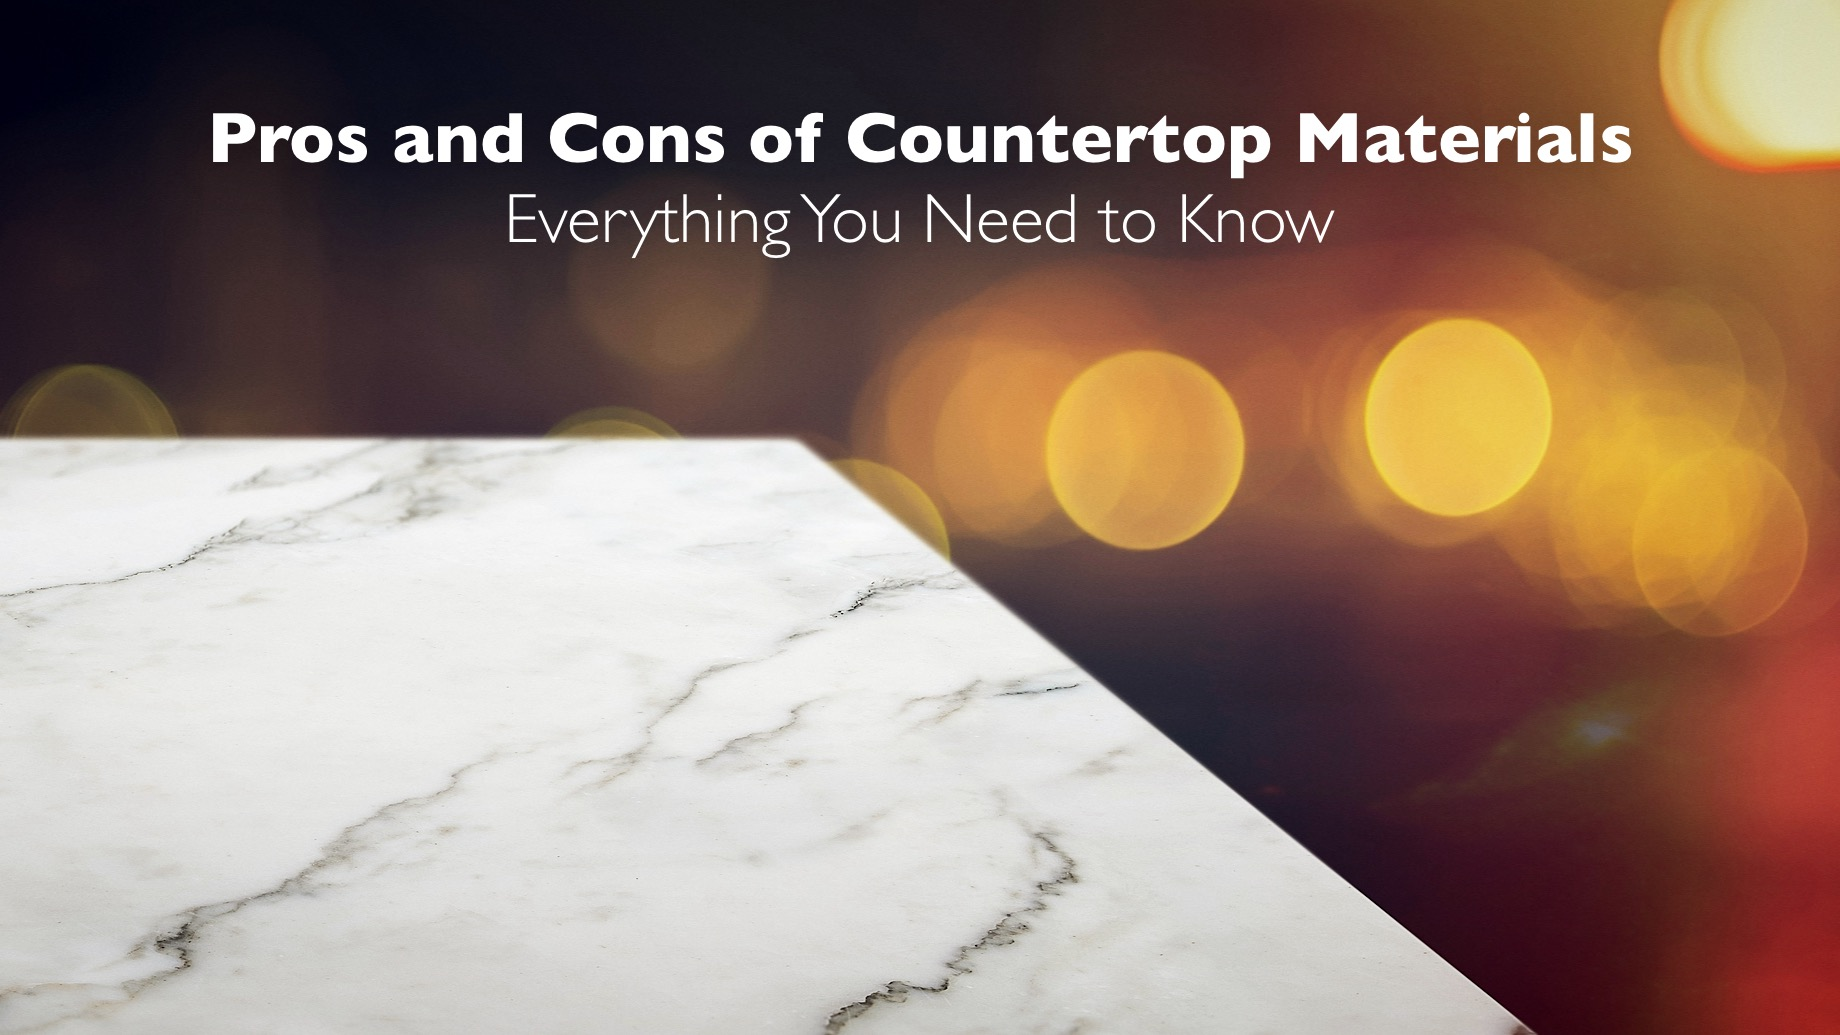 Pros and Cons of Countertop Materials - Everything You Need to Know